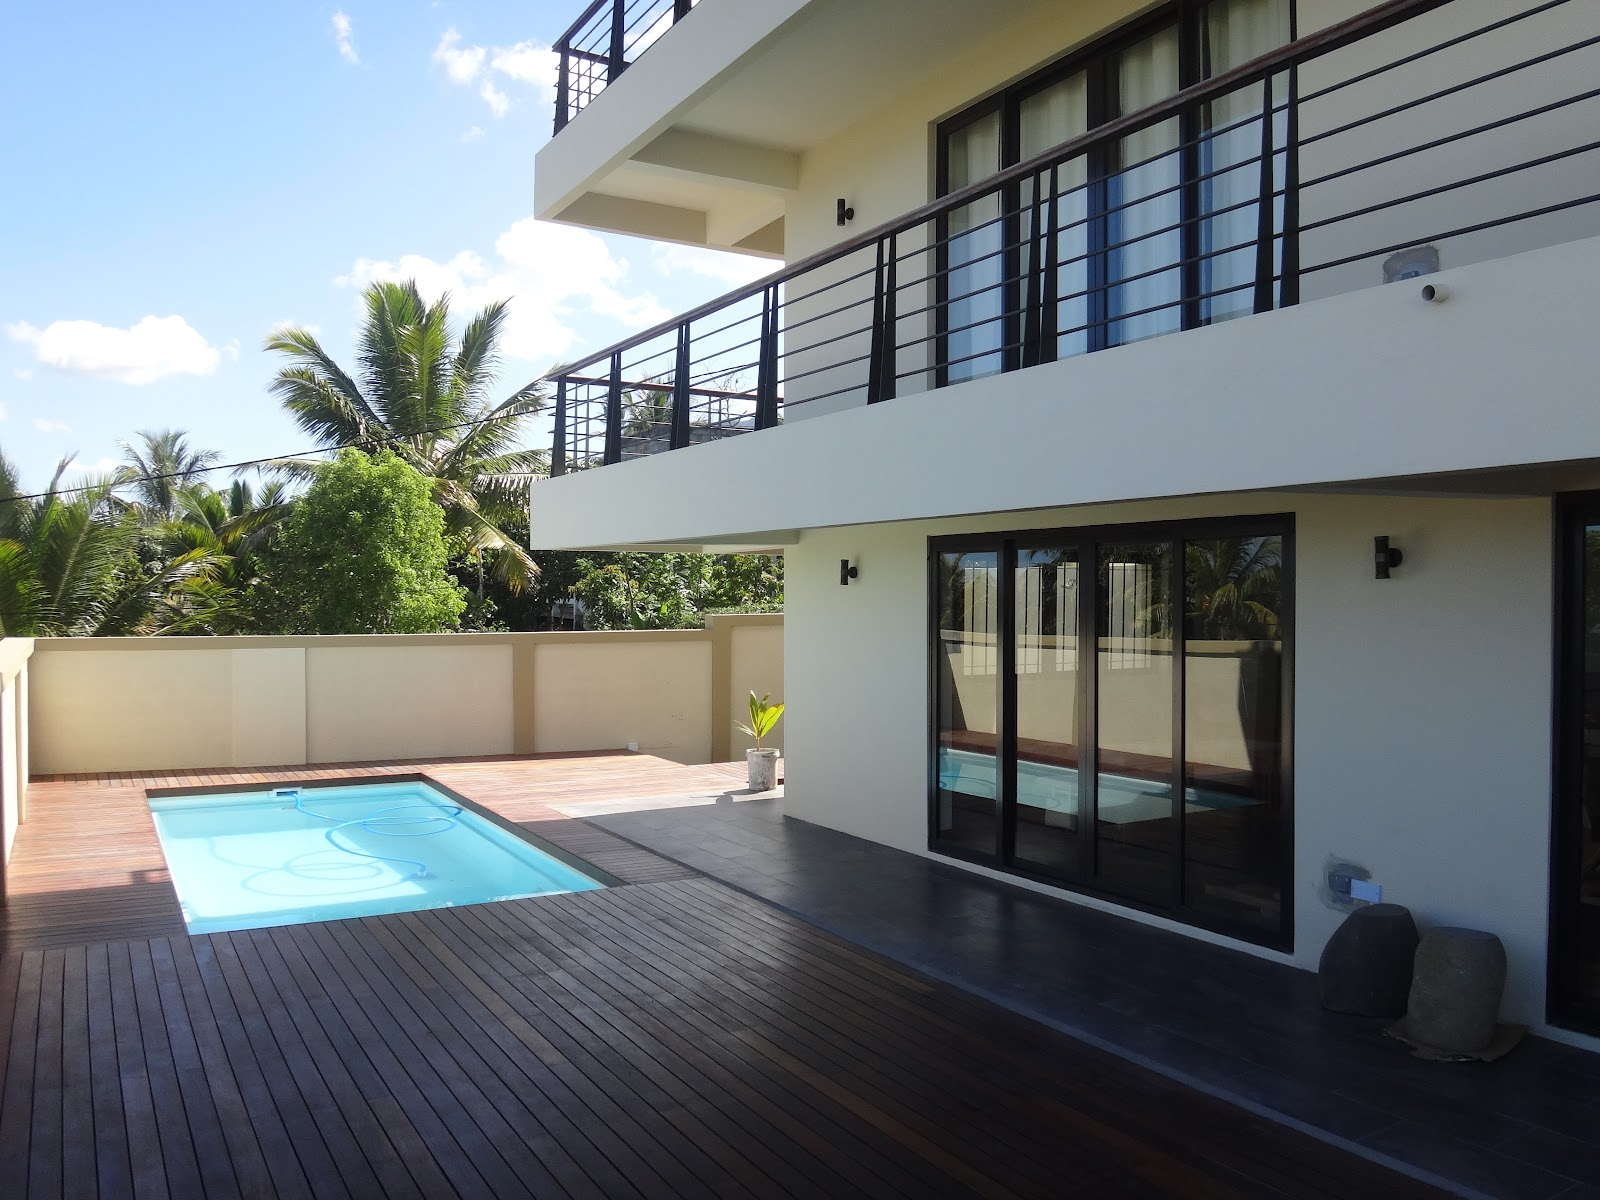 House design mauritius - Situated In La Gaulette 5 Mins To Le Morne Beach Mauritius We Have 4 Fully Furnished European Style Ensuite Rooms Private Balcony A Mini Bar Fridge